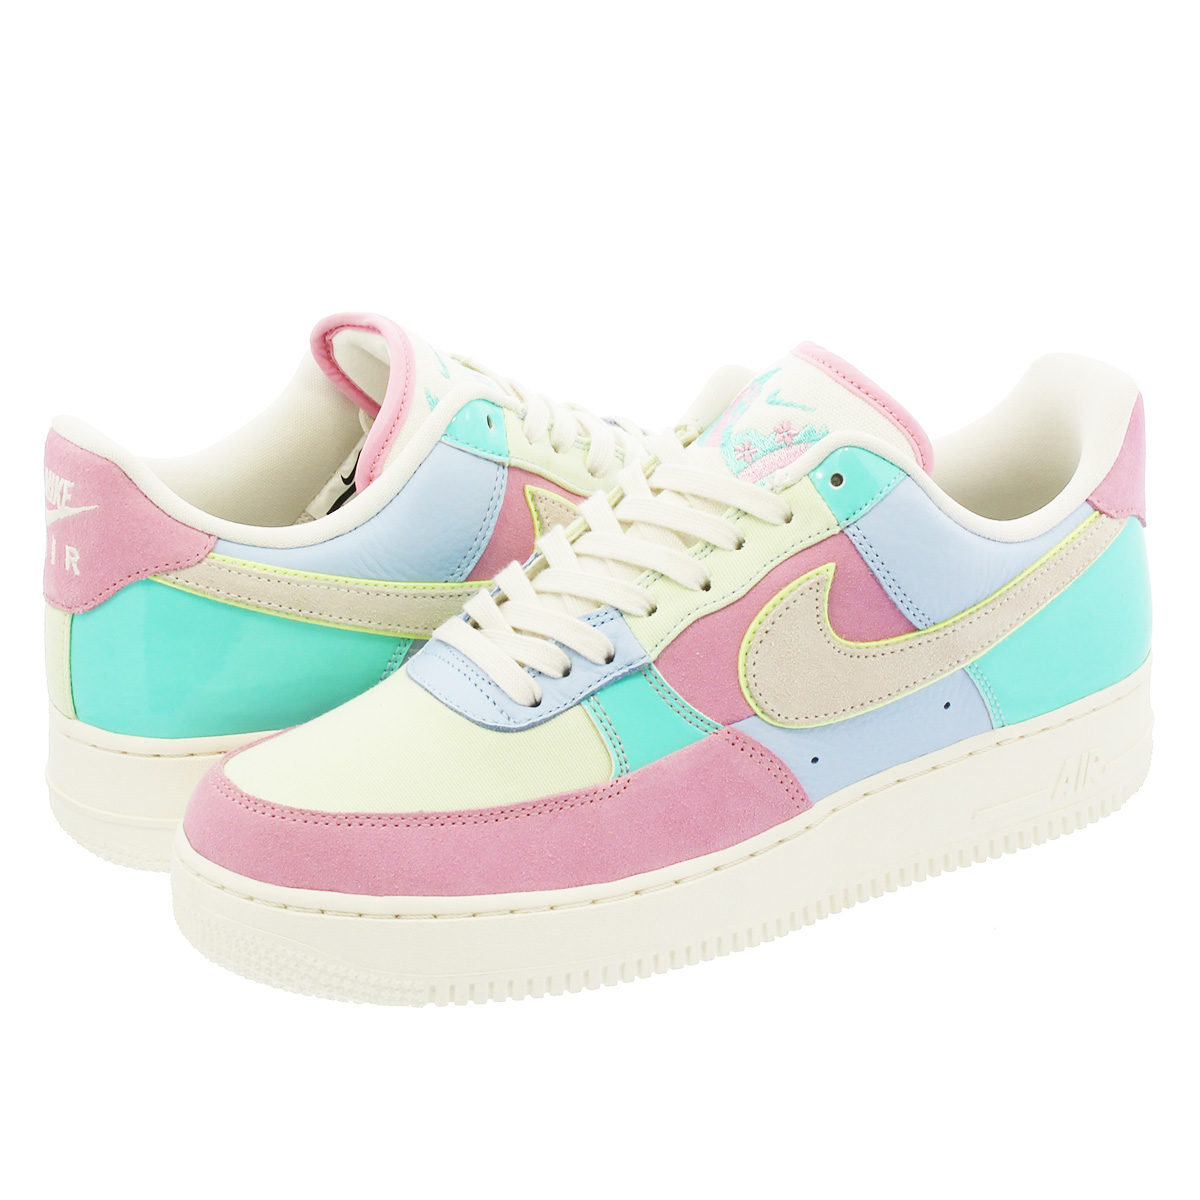 half off d6ca1 7973b NIKE AIR FORCE 1 LOW Nike air force 1 low Easter egg PINK/LIGHT BLUE/SAIL  ah8462-400